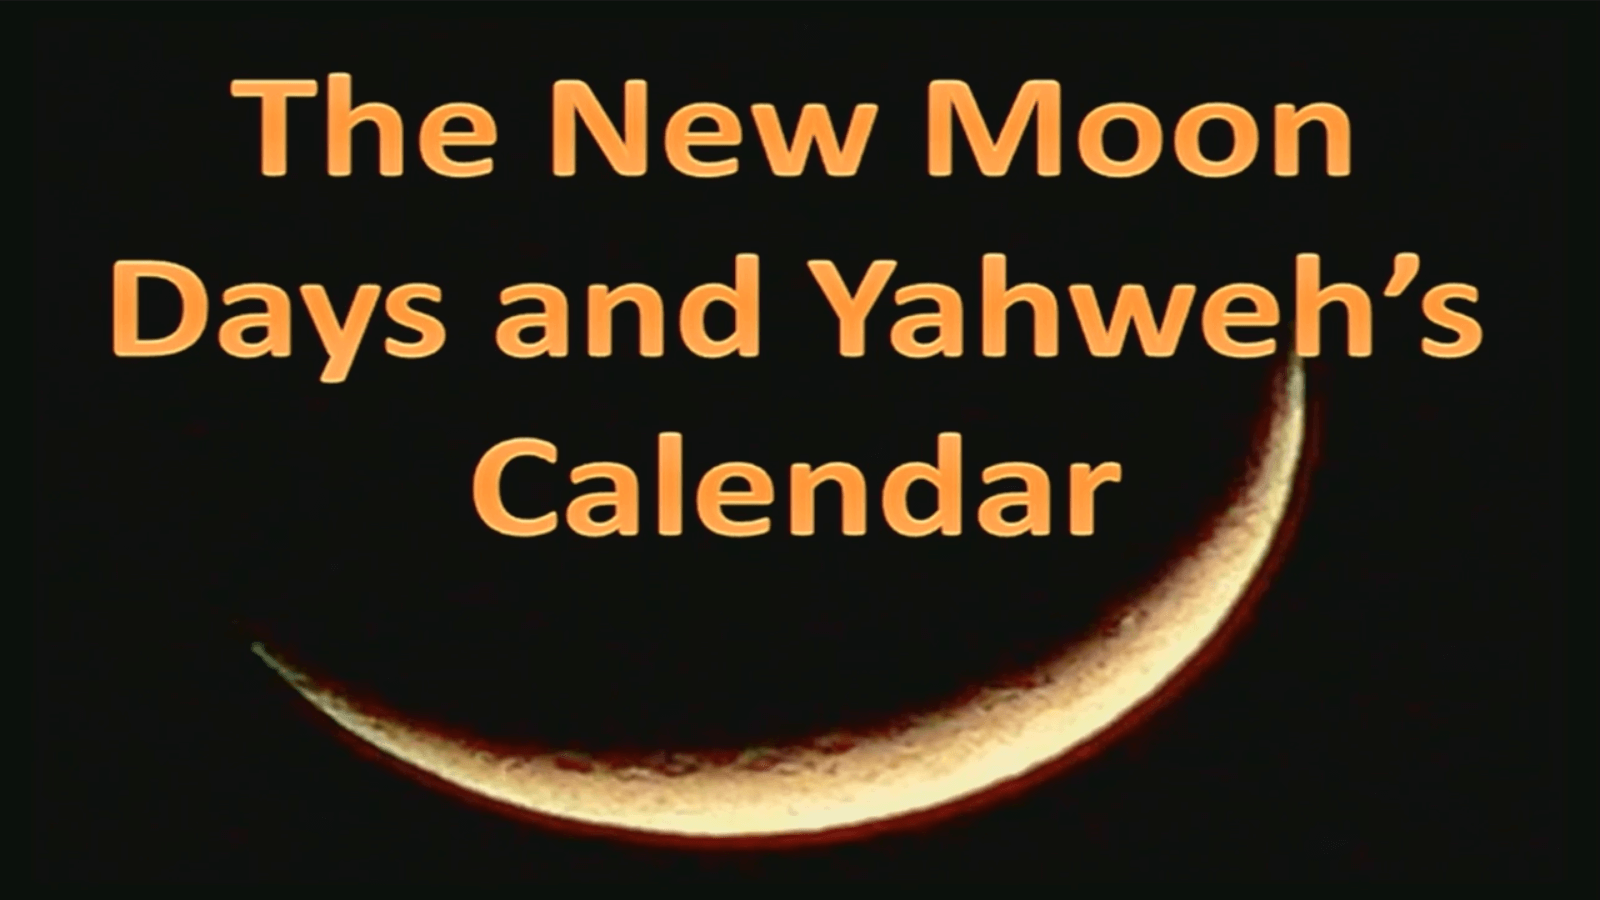 The New Moon Days and Yahweh's Calendar